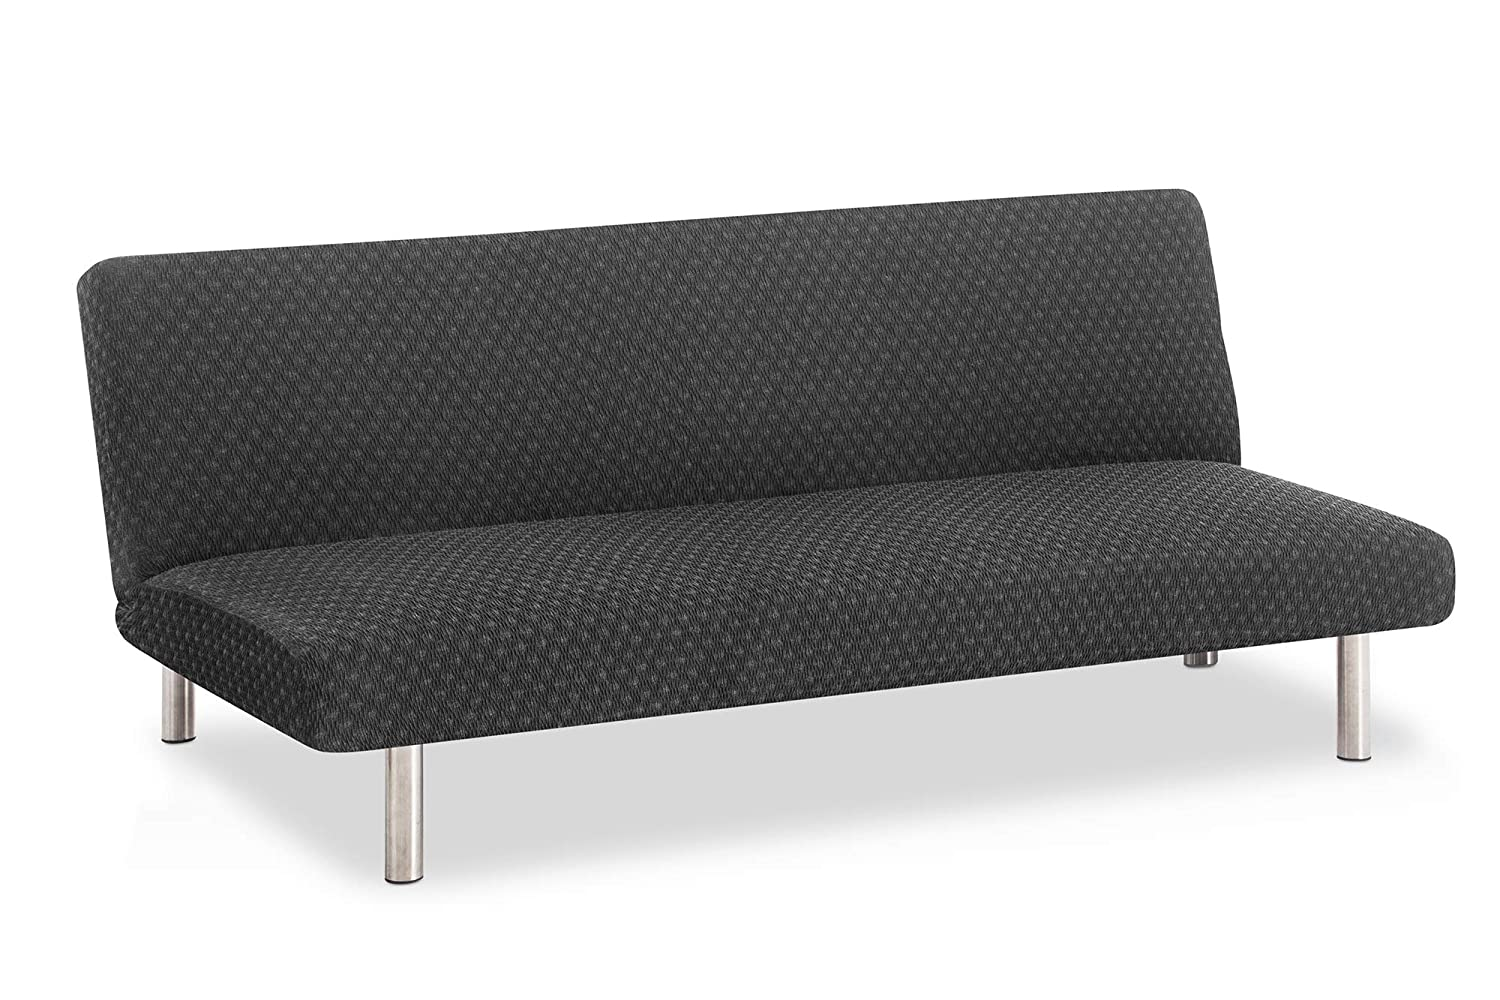 Bartali Elastic Sofabed Click-clack Cover Olivia - Black Colour - Standard size (from 170 to 205 cm)